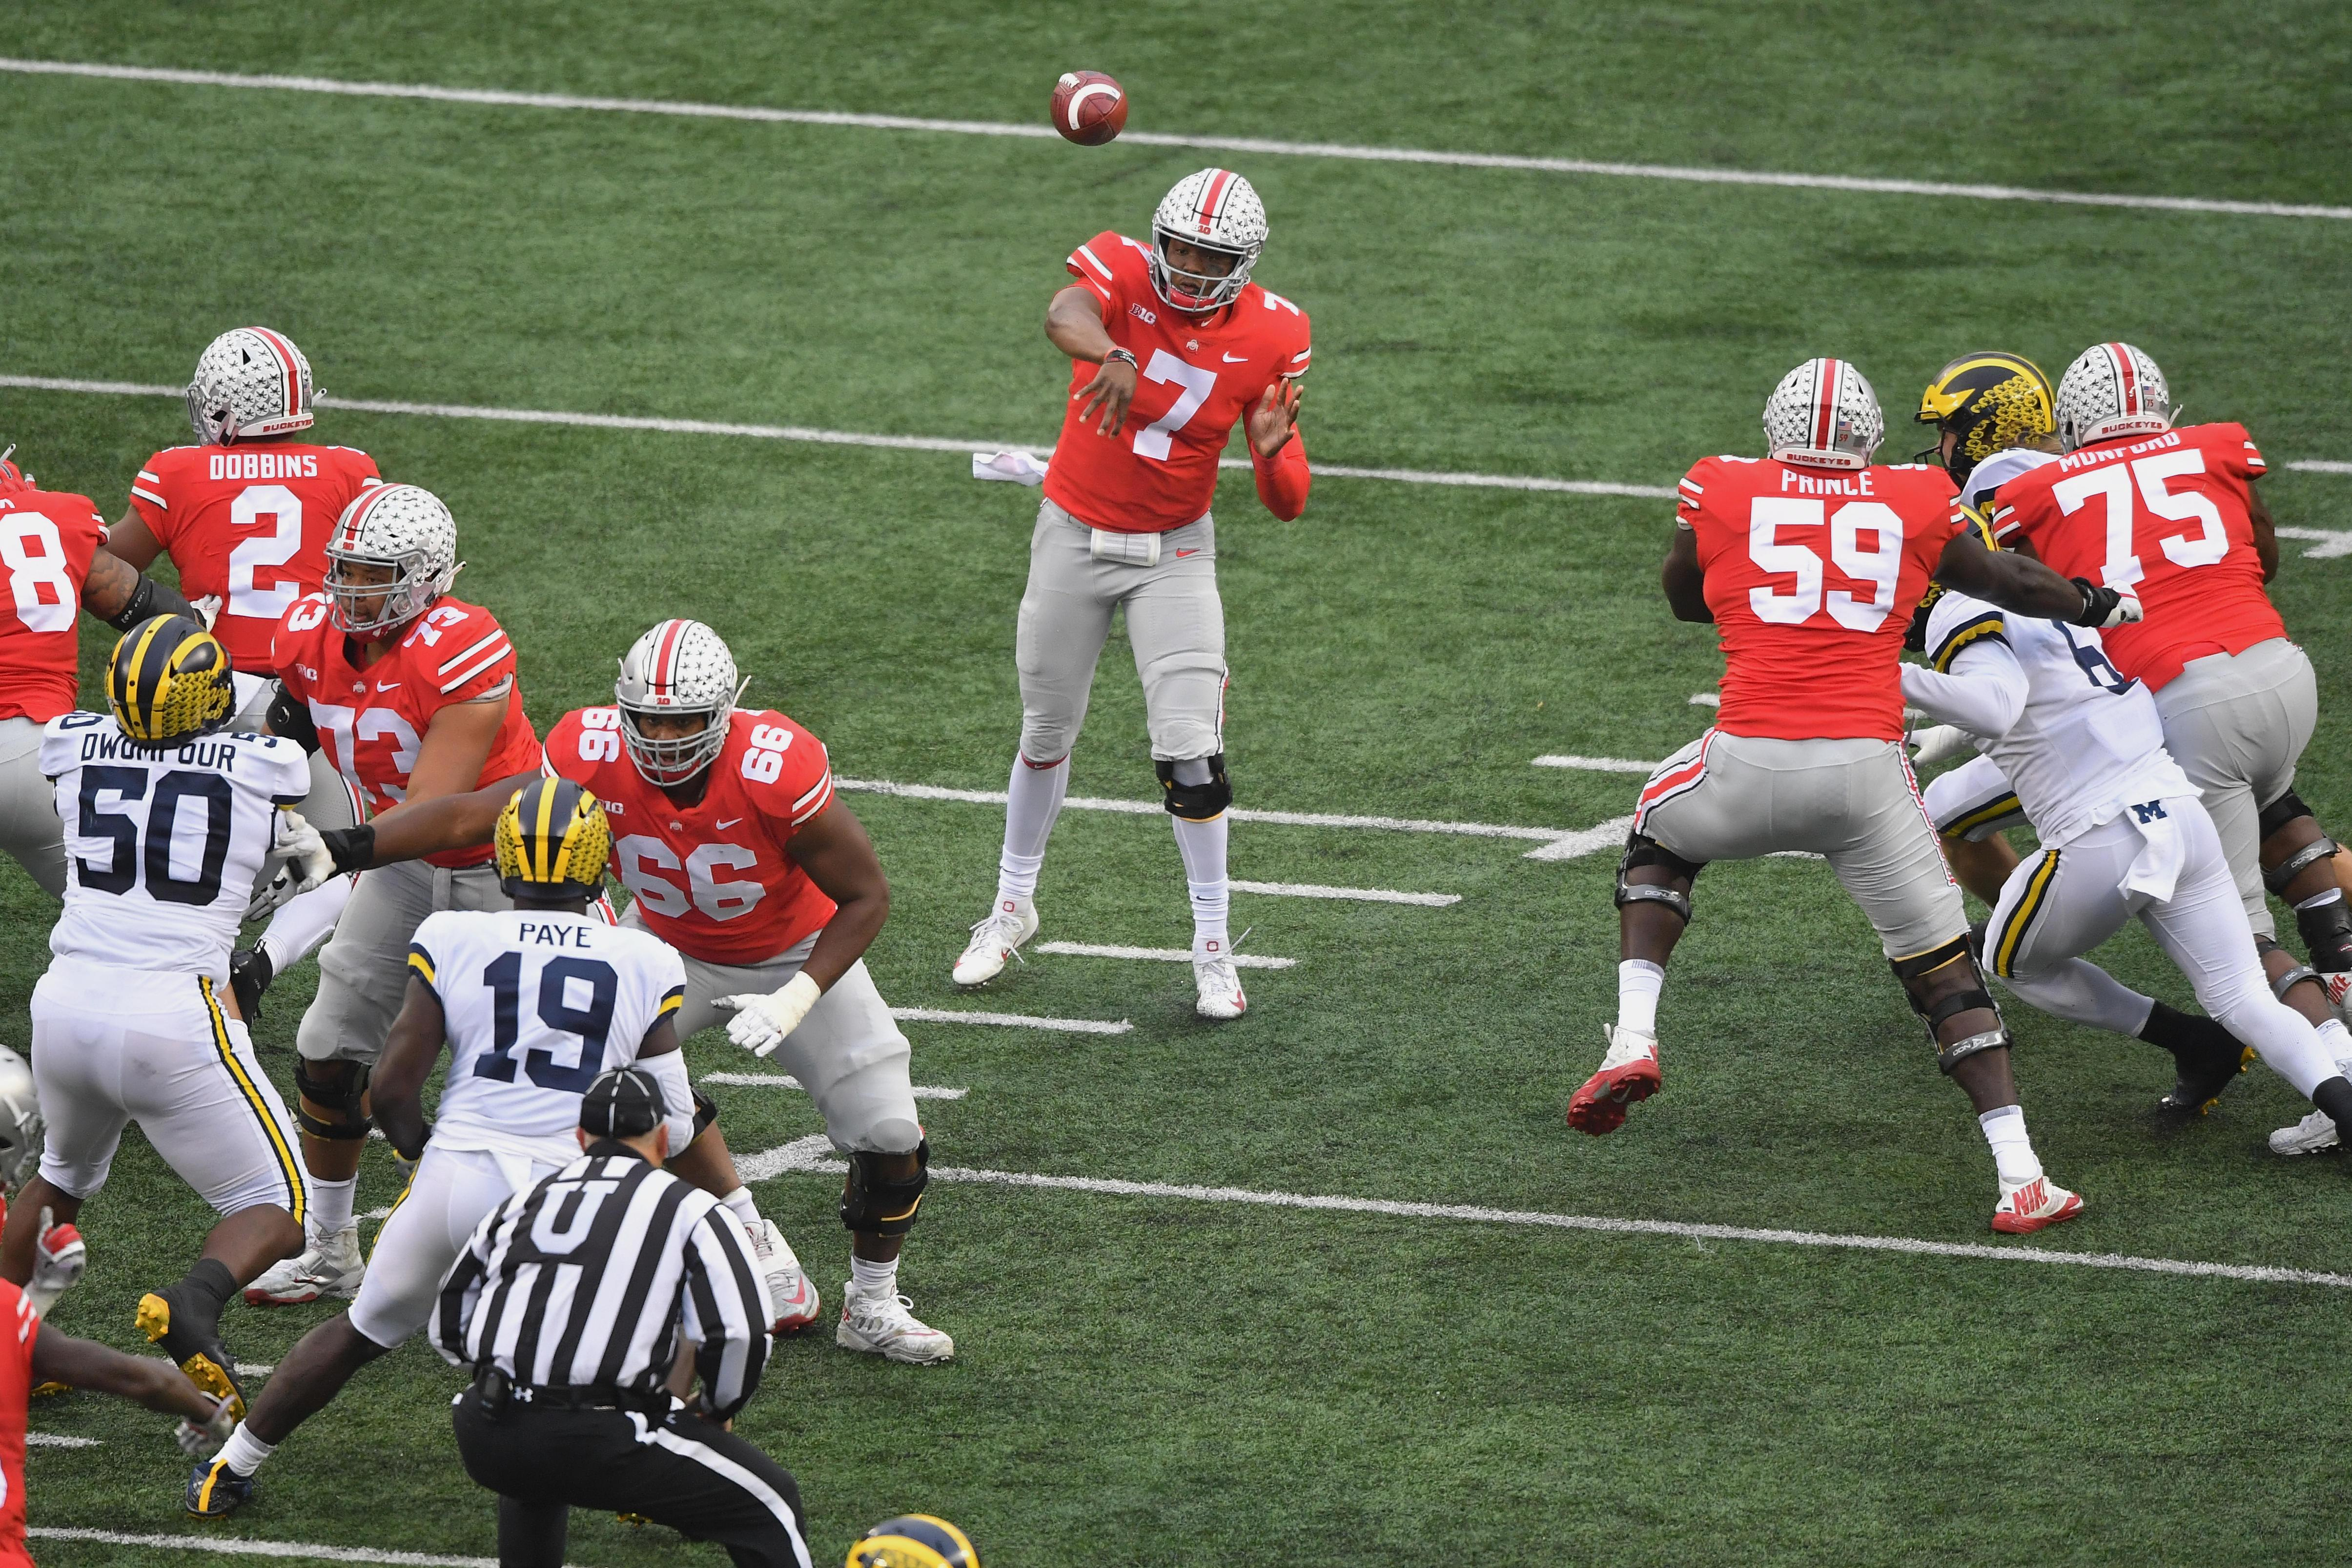 238ee6b0c94 Ohio State is back in the playoff race after destroying Michigan